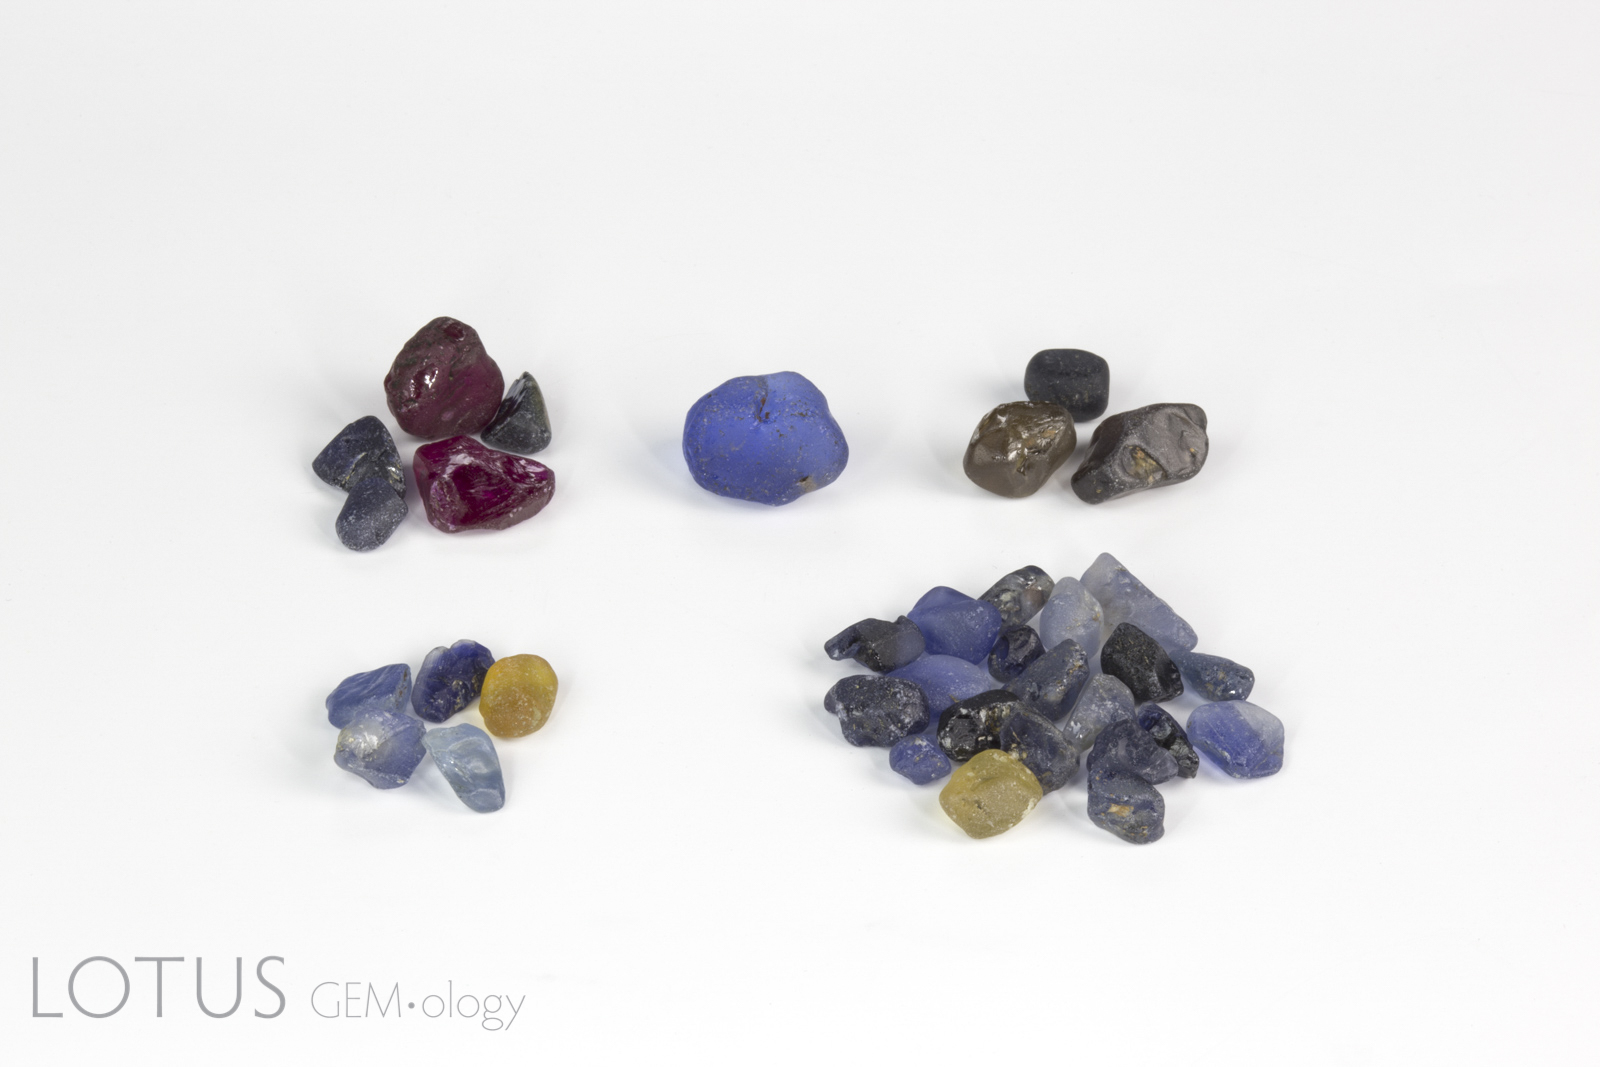 Rough gem samples purchased at Colorline's Ilakaka office (clockwise from top left): Verneuil synthetic corundum, blue glass, zircon and spinel, coated natural sapphire; natural untreated blue and yellow sapphire. Note that these were purchased just to get a snapshot of what was in the market, even though we knew many were not what they were represented as. Photo: Wimon Manorotkul.